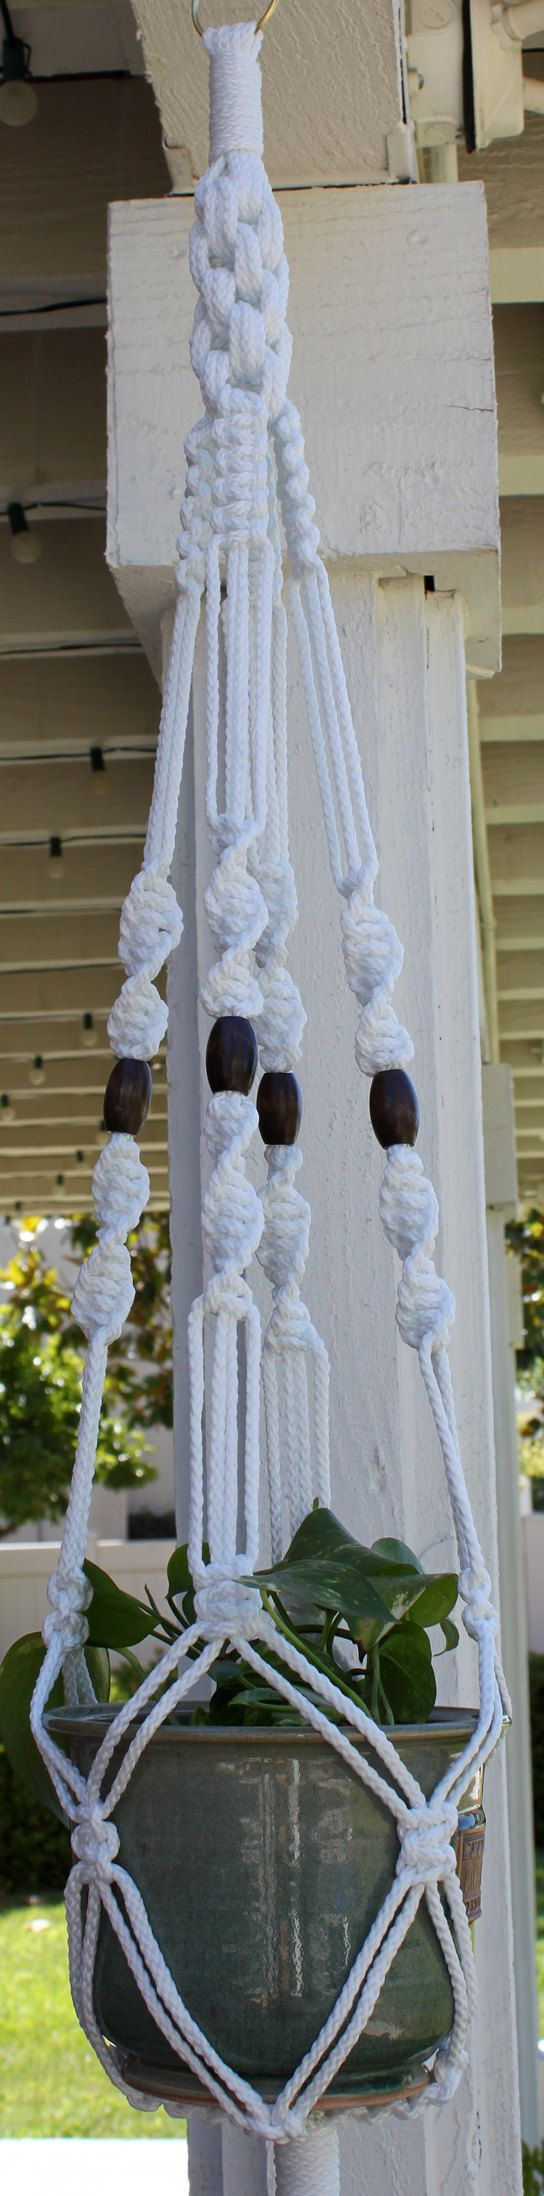 Macrame Plant Hanger Holder - CROWNE ROYALE - 6mm Braided Poly Cord - White